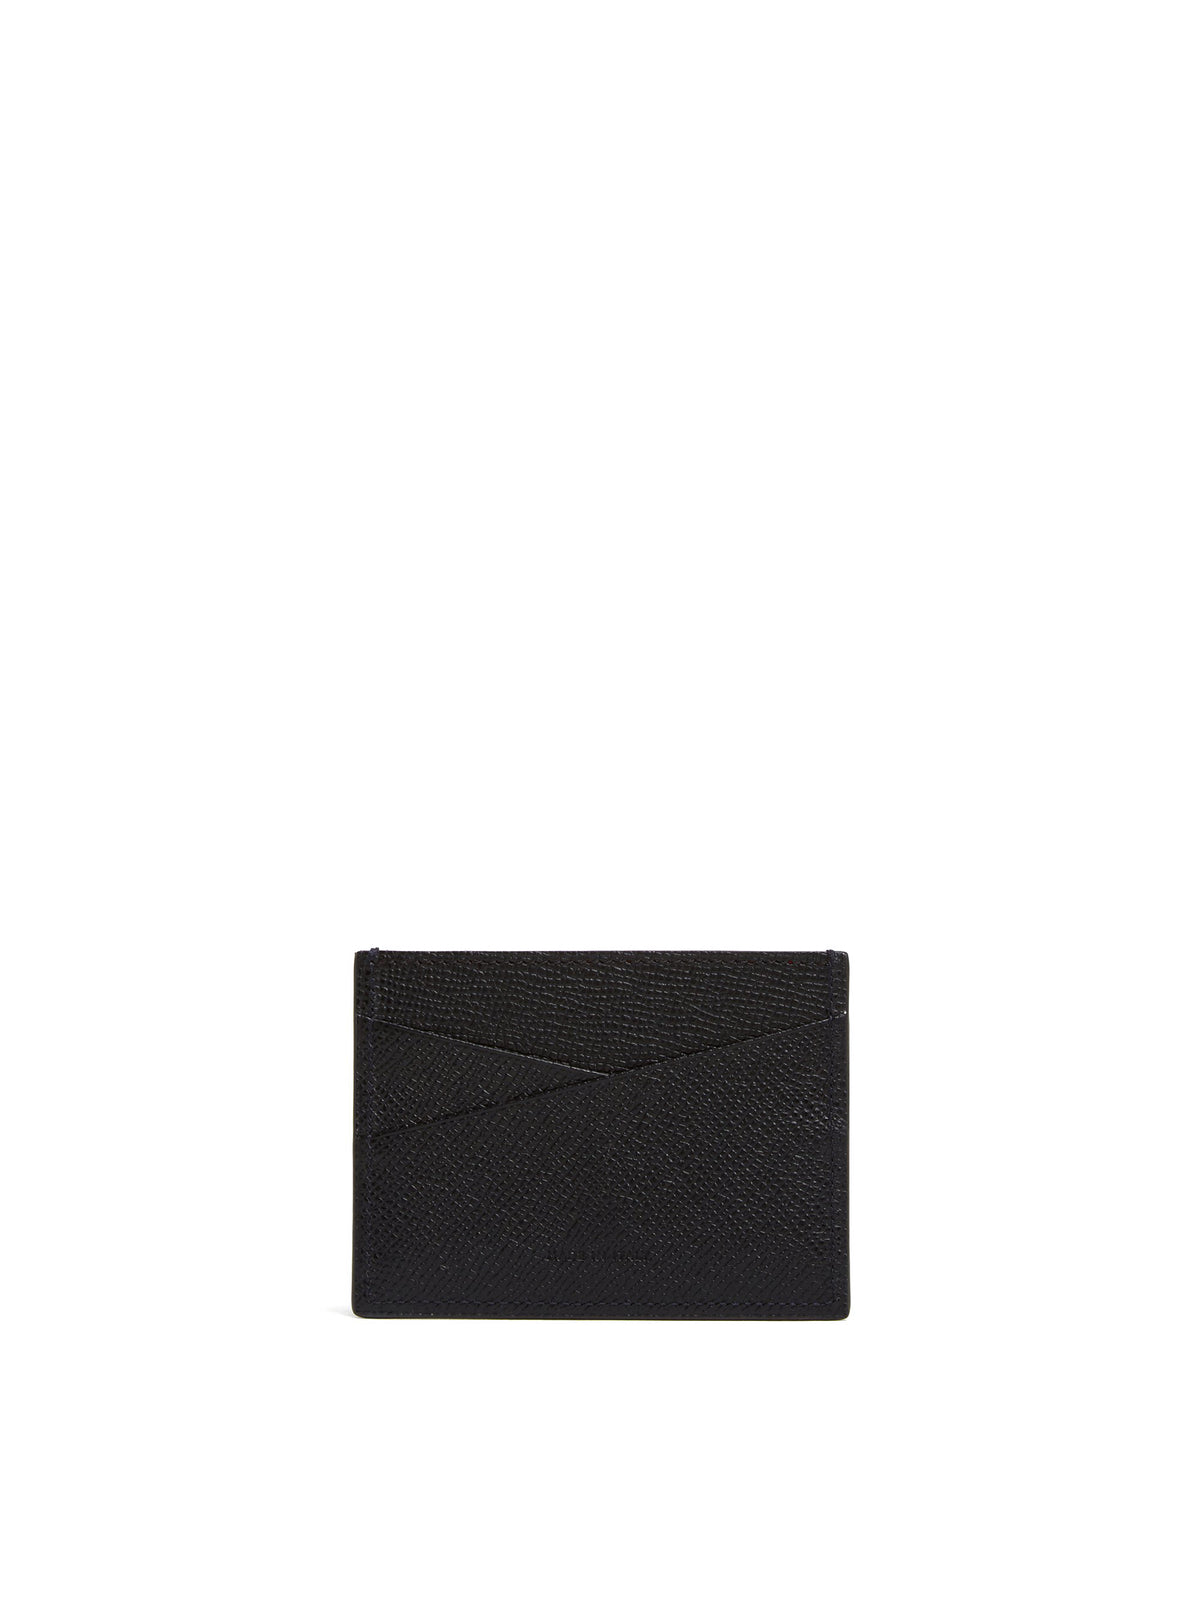 Mark Cross Leather Card Case Saffiano Black Back